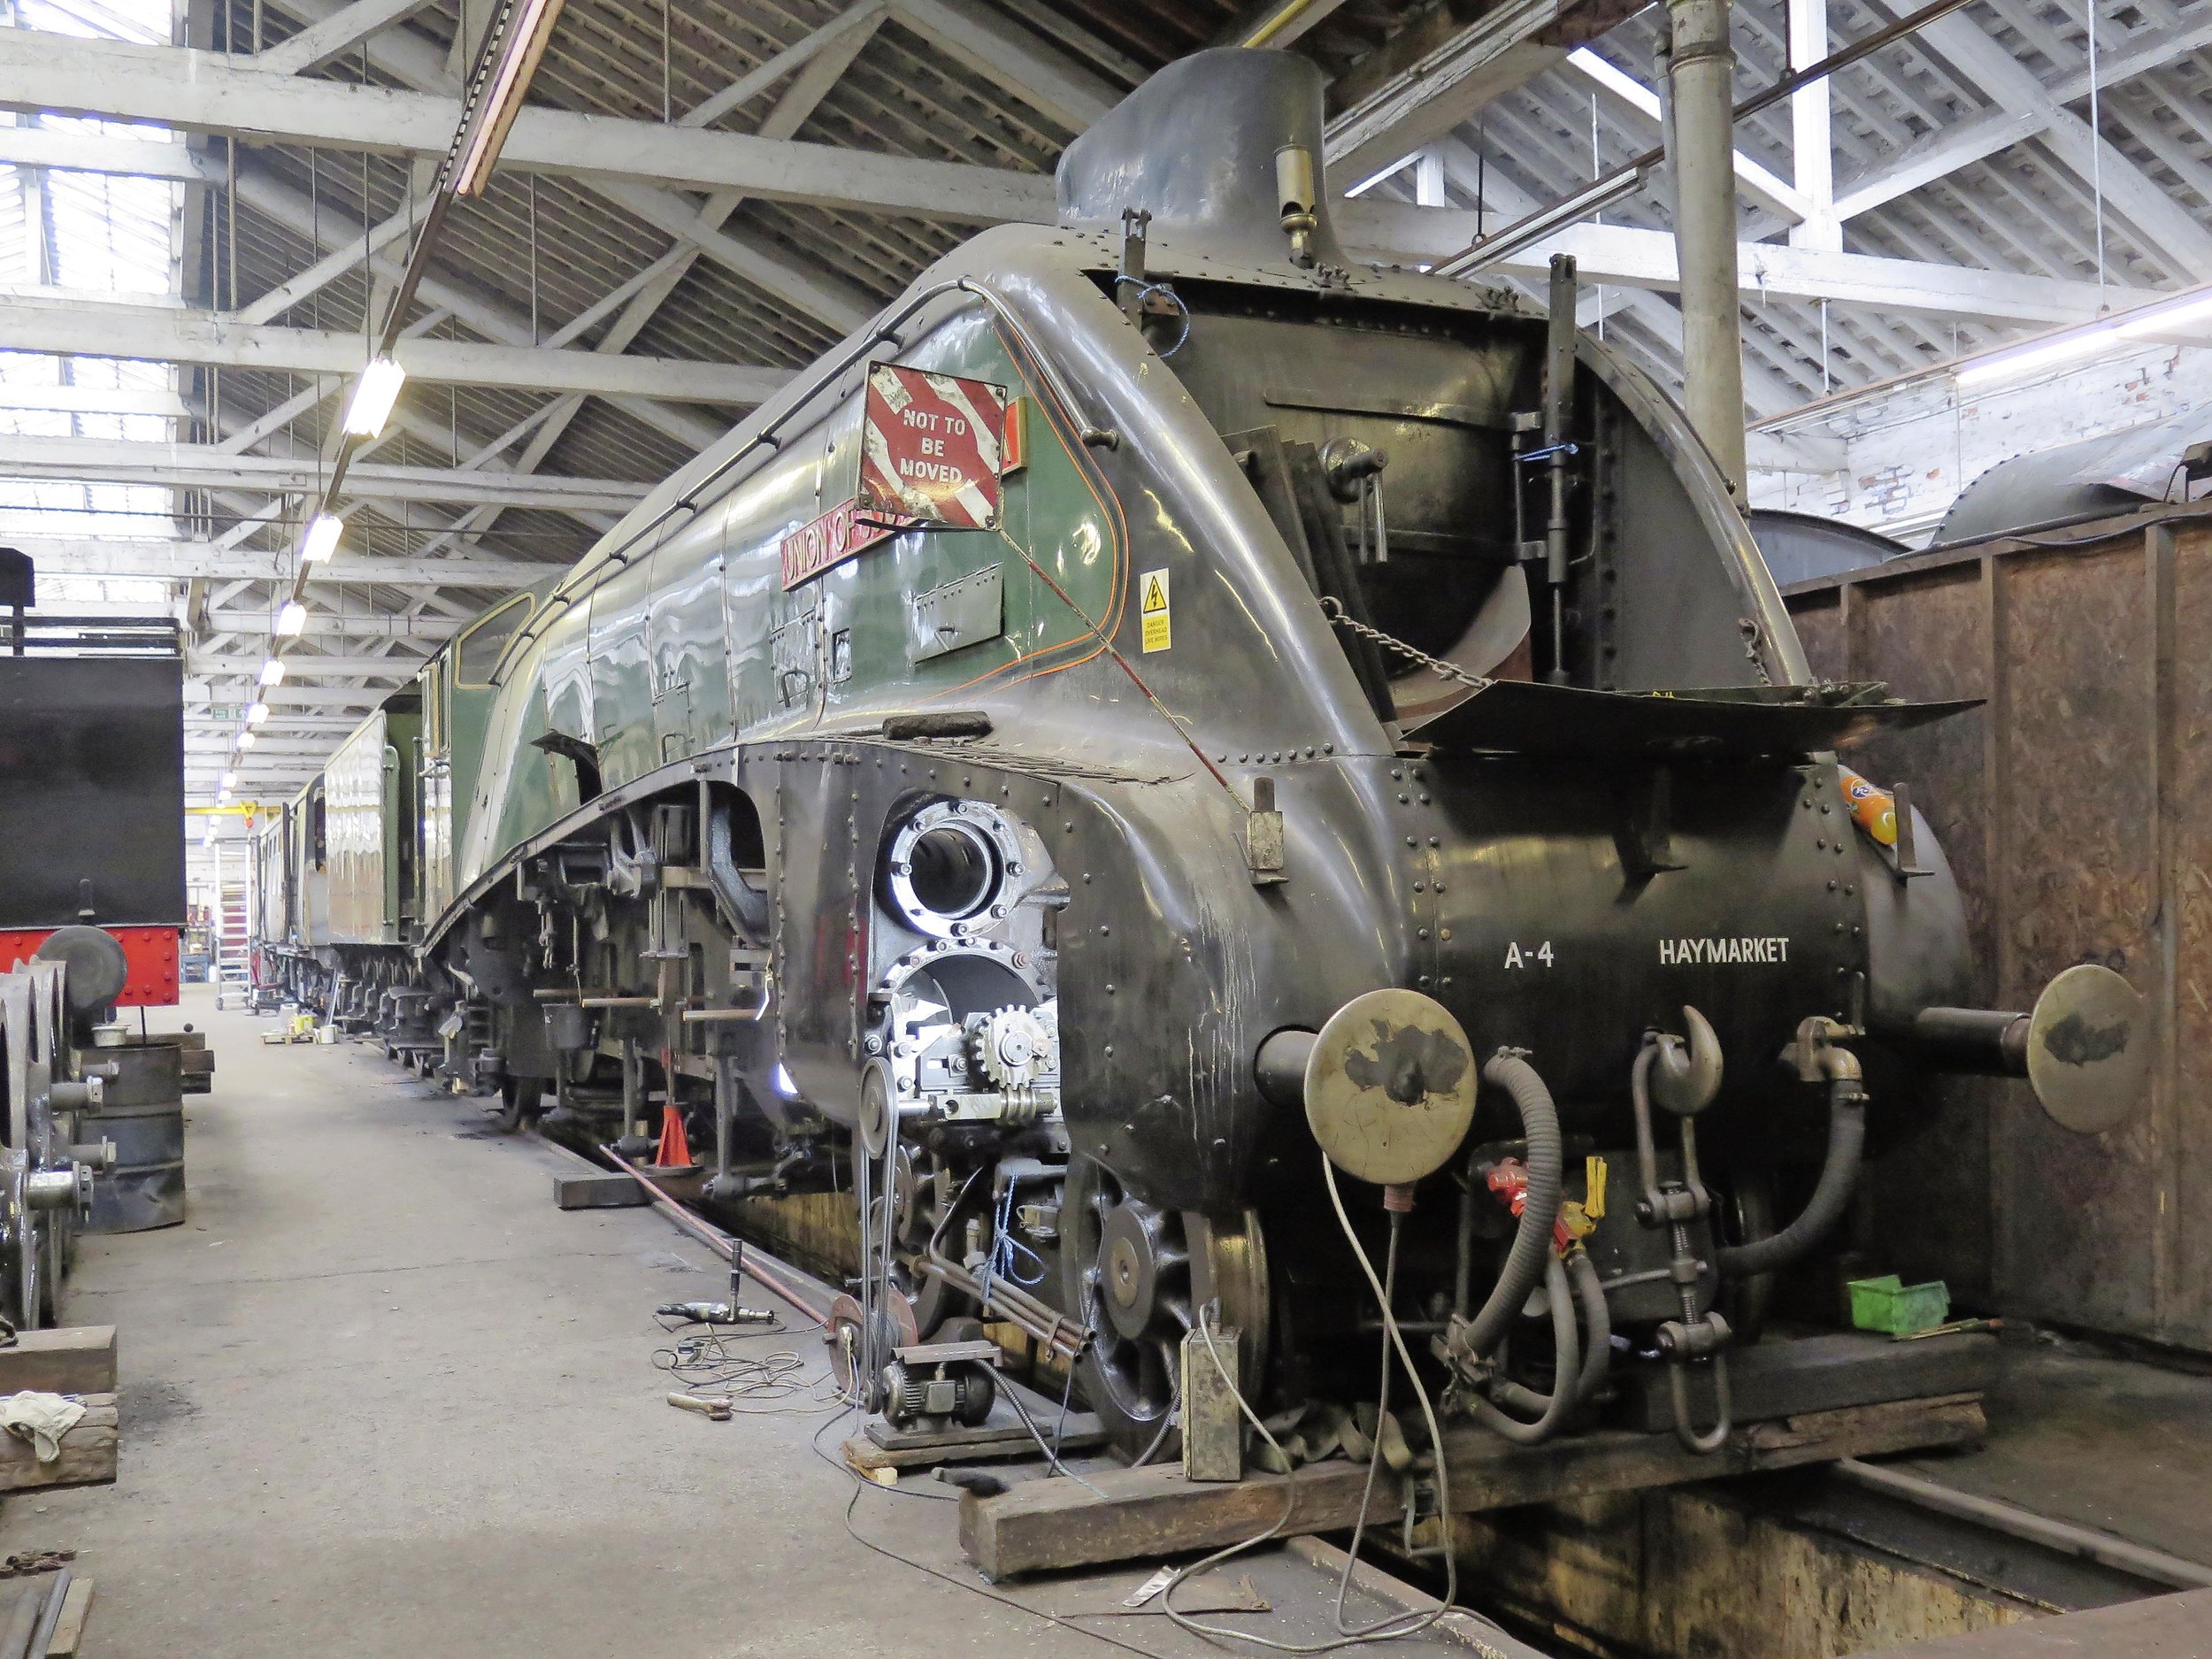 As its overhaul reaches completion, 'A4' No. 60009  Union of South Africa  has its cylinders re-bored at Riley & Son (E) Ltd. in Lancashire, ahead of its visit to the Nene Valley Railway in September. JOHN SAGAR